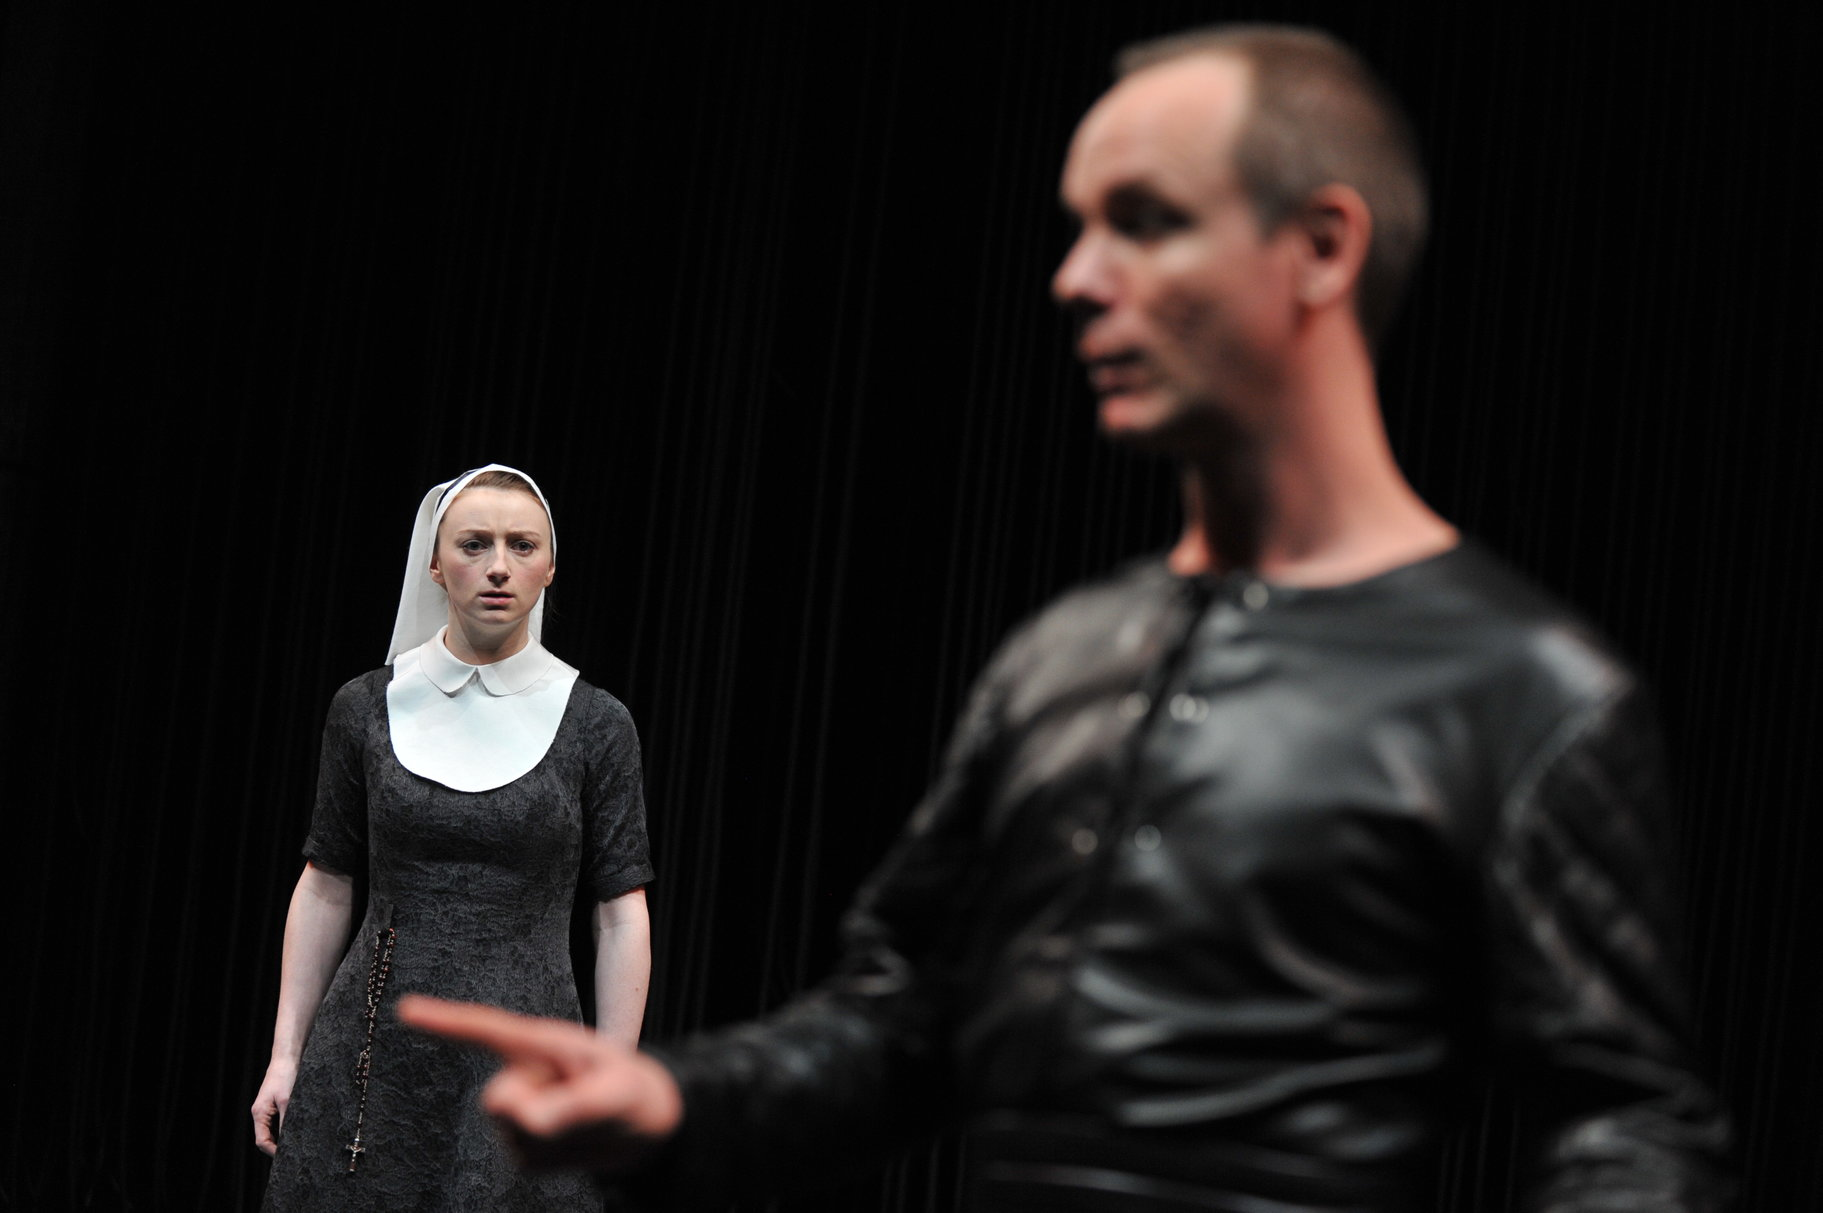 A nun looks accusingly at a man in black.